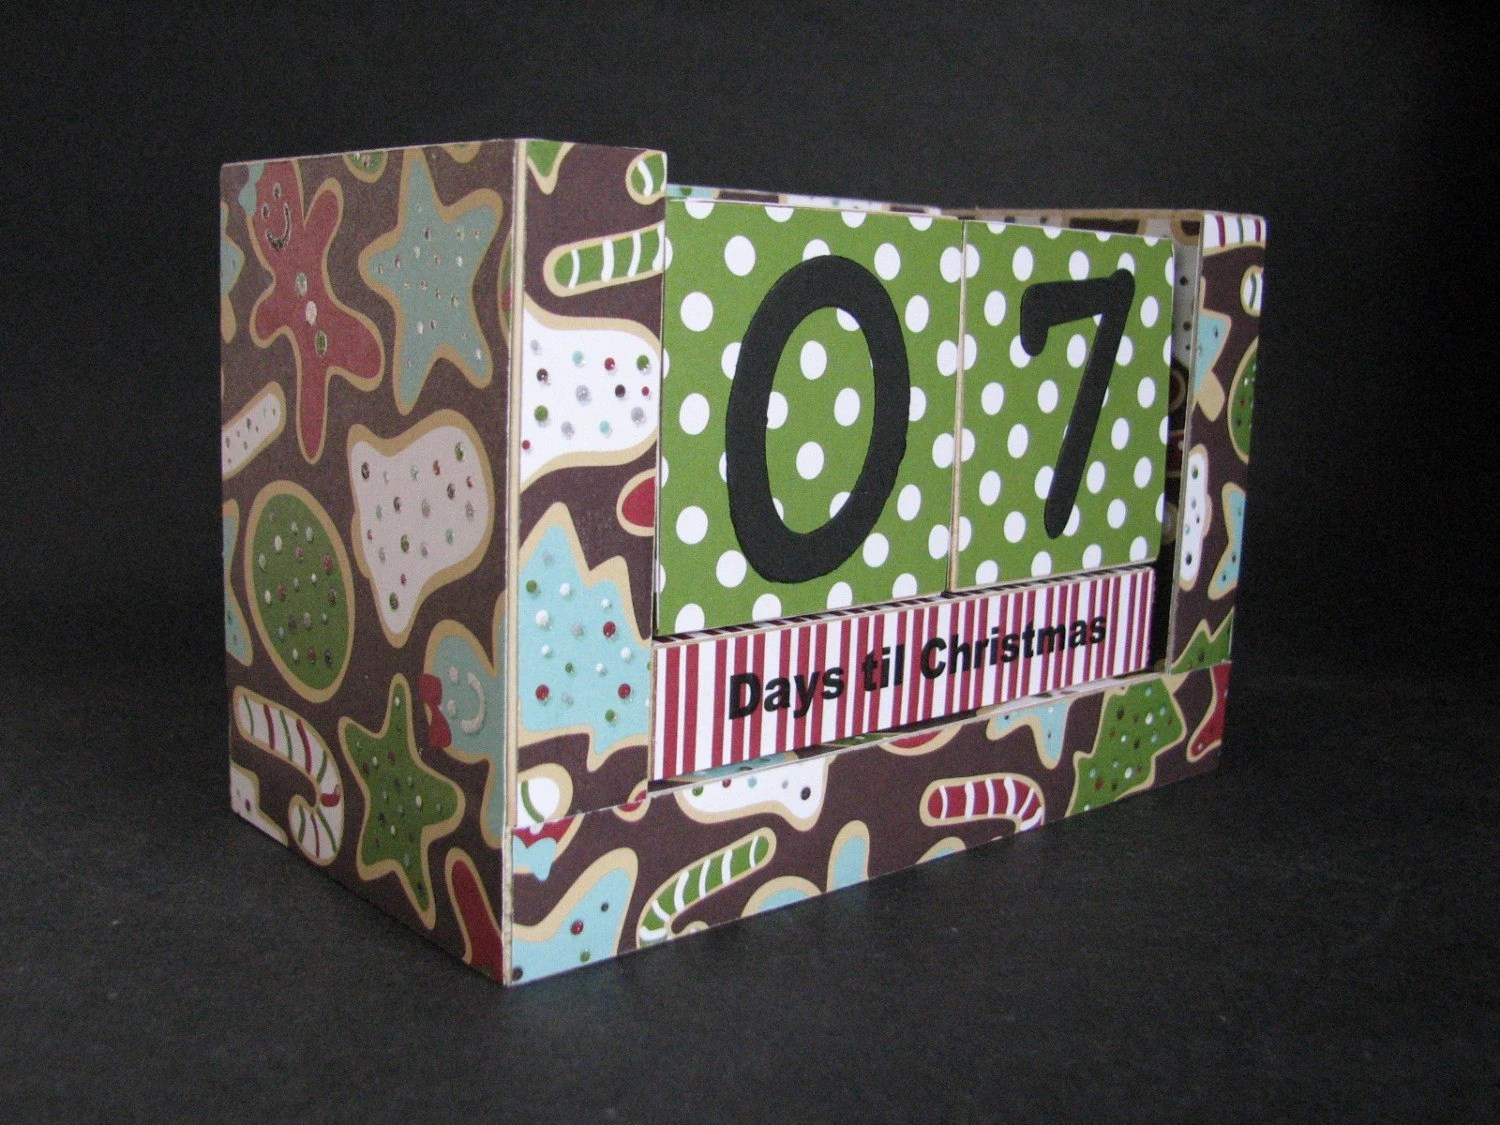 Christmas Countdown Wooden Block Calendar - Baking Christmas Cookies